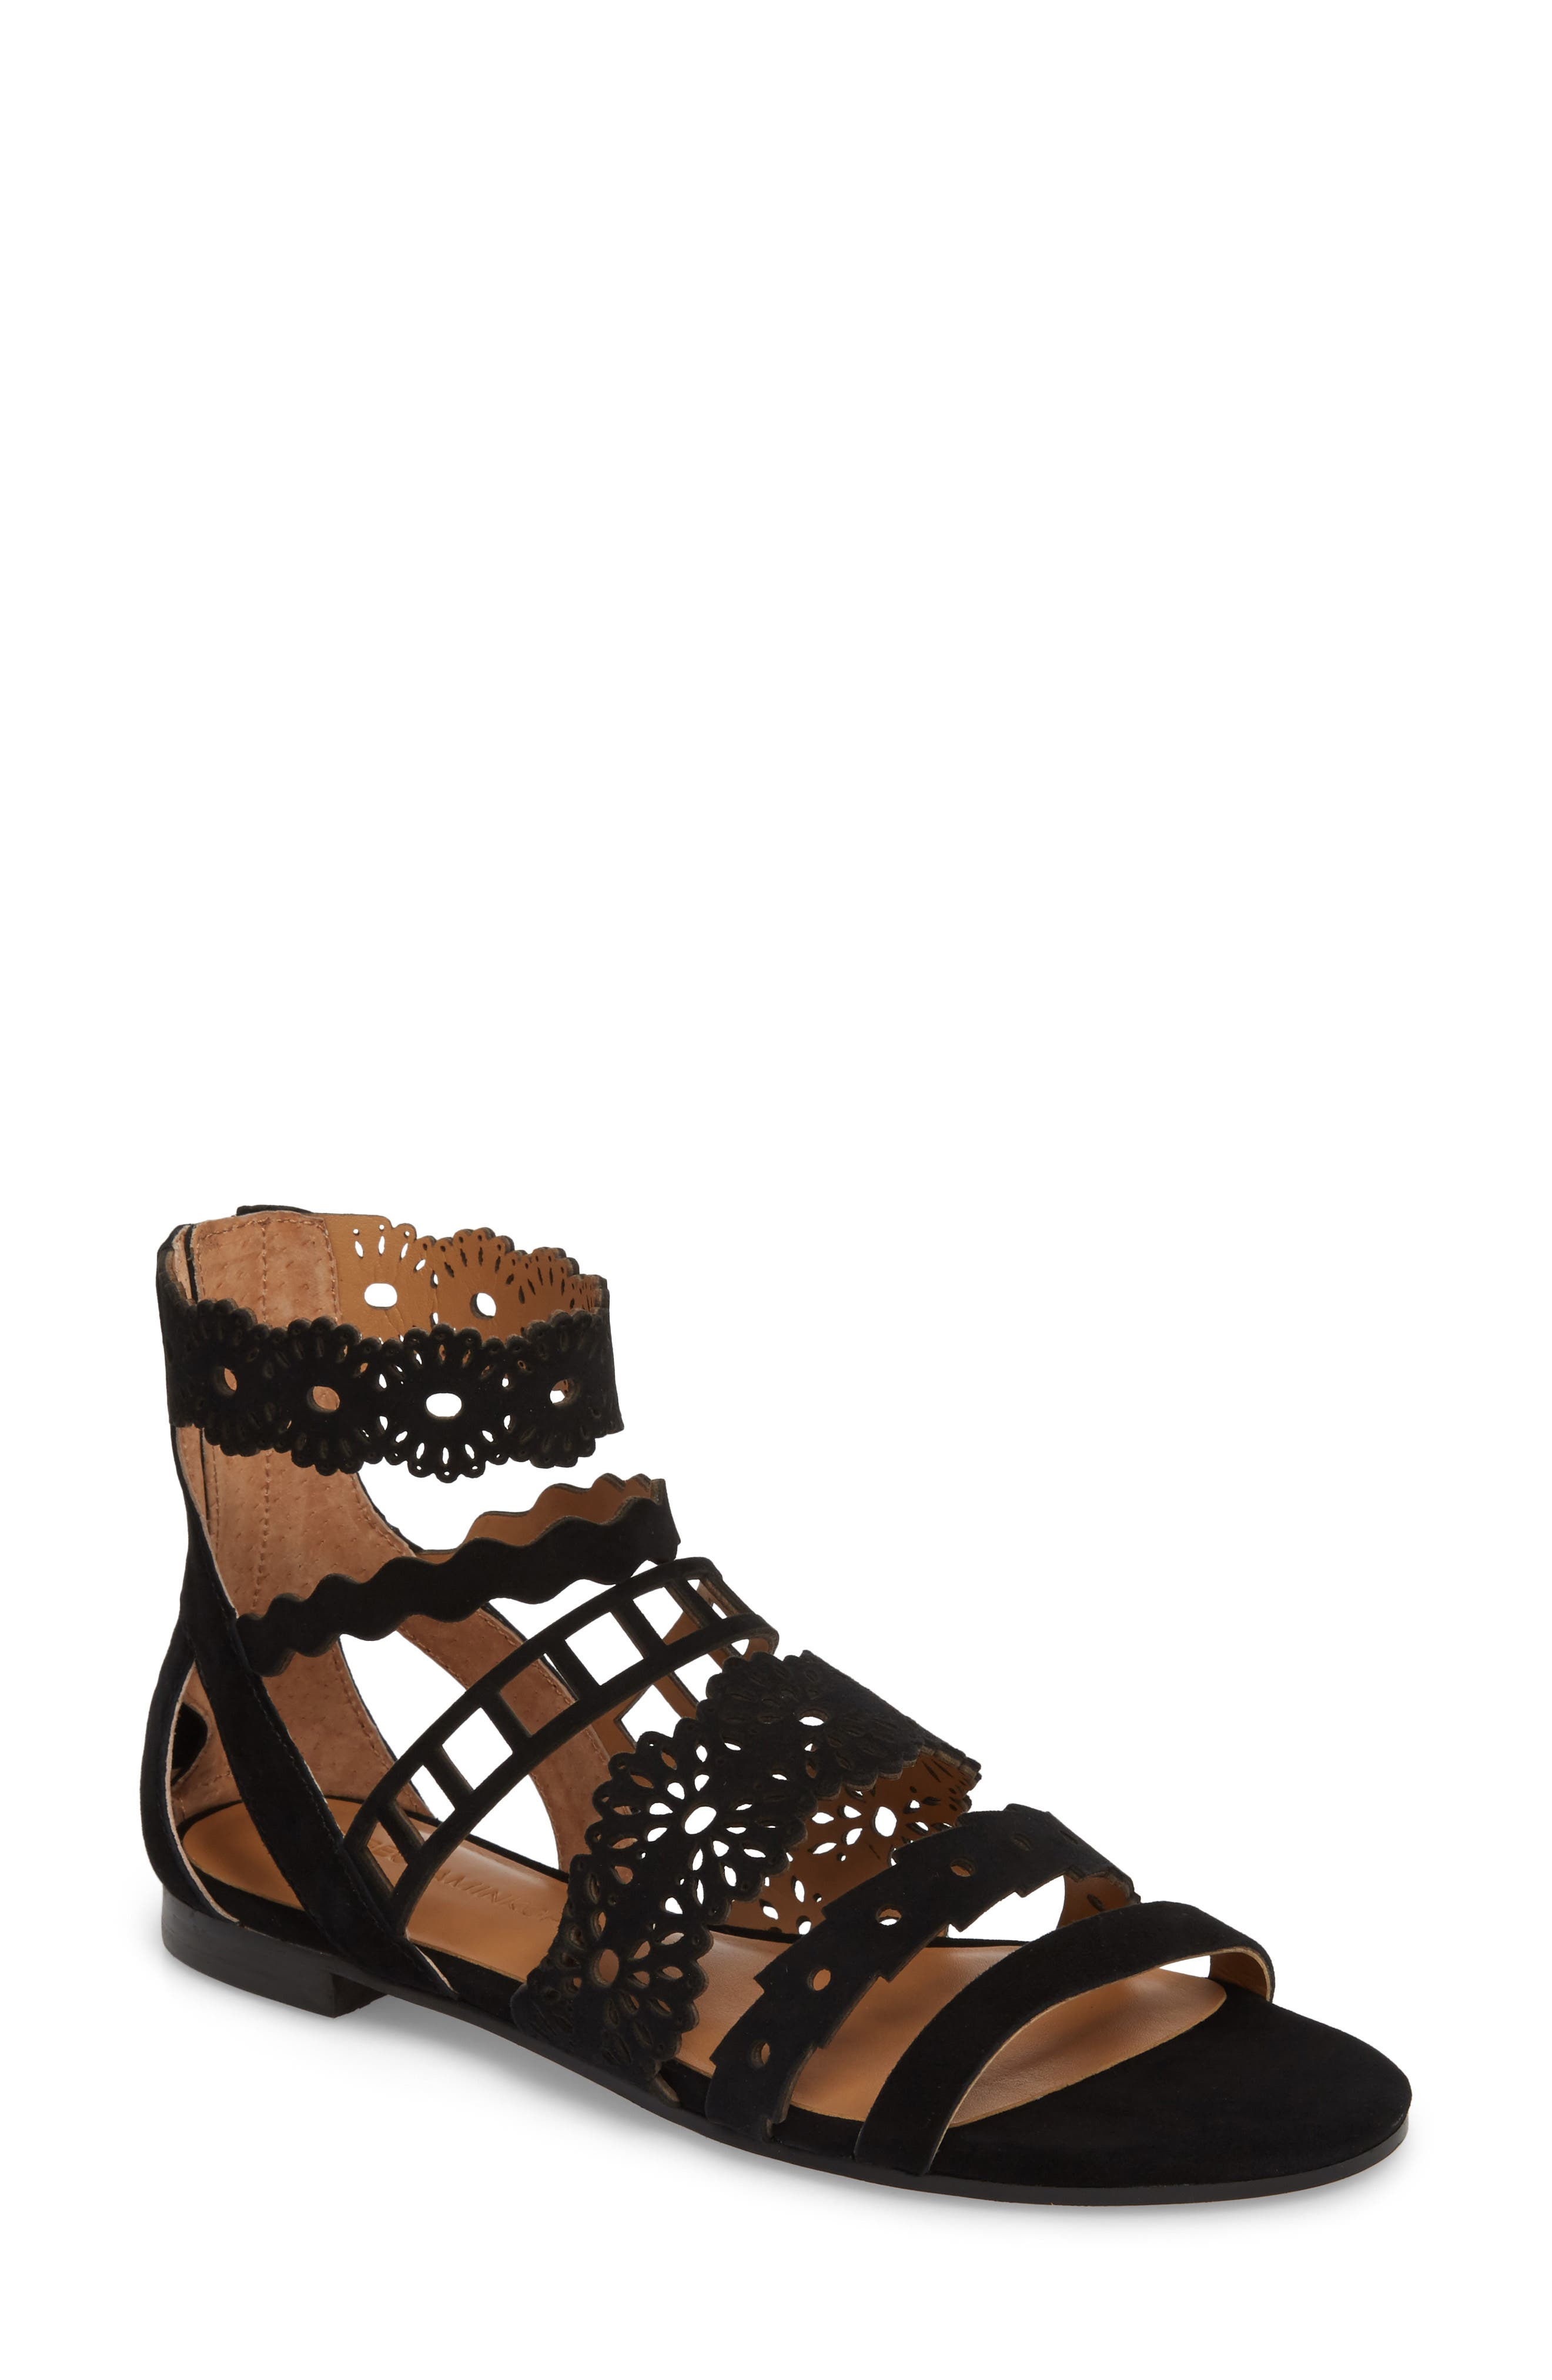 Lina Sandal,                         Main,                         color, 001